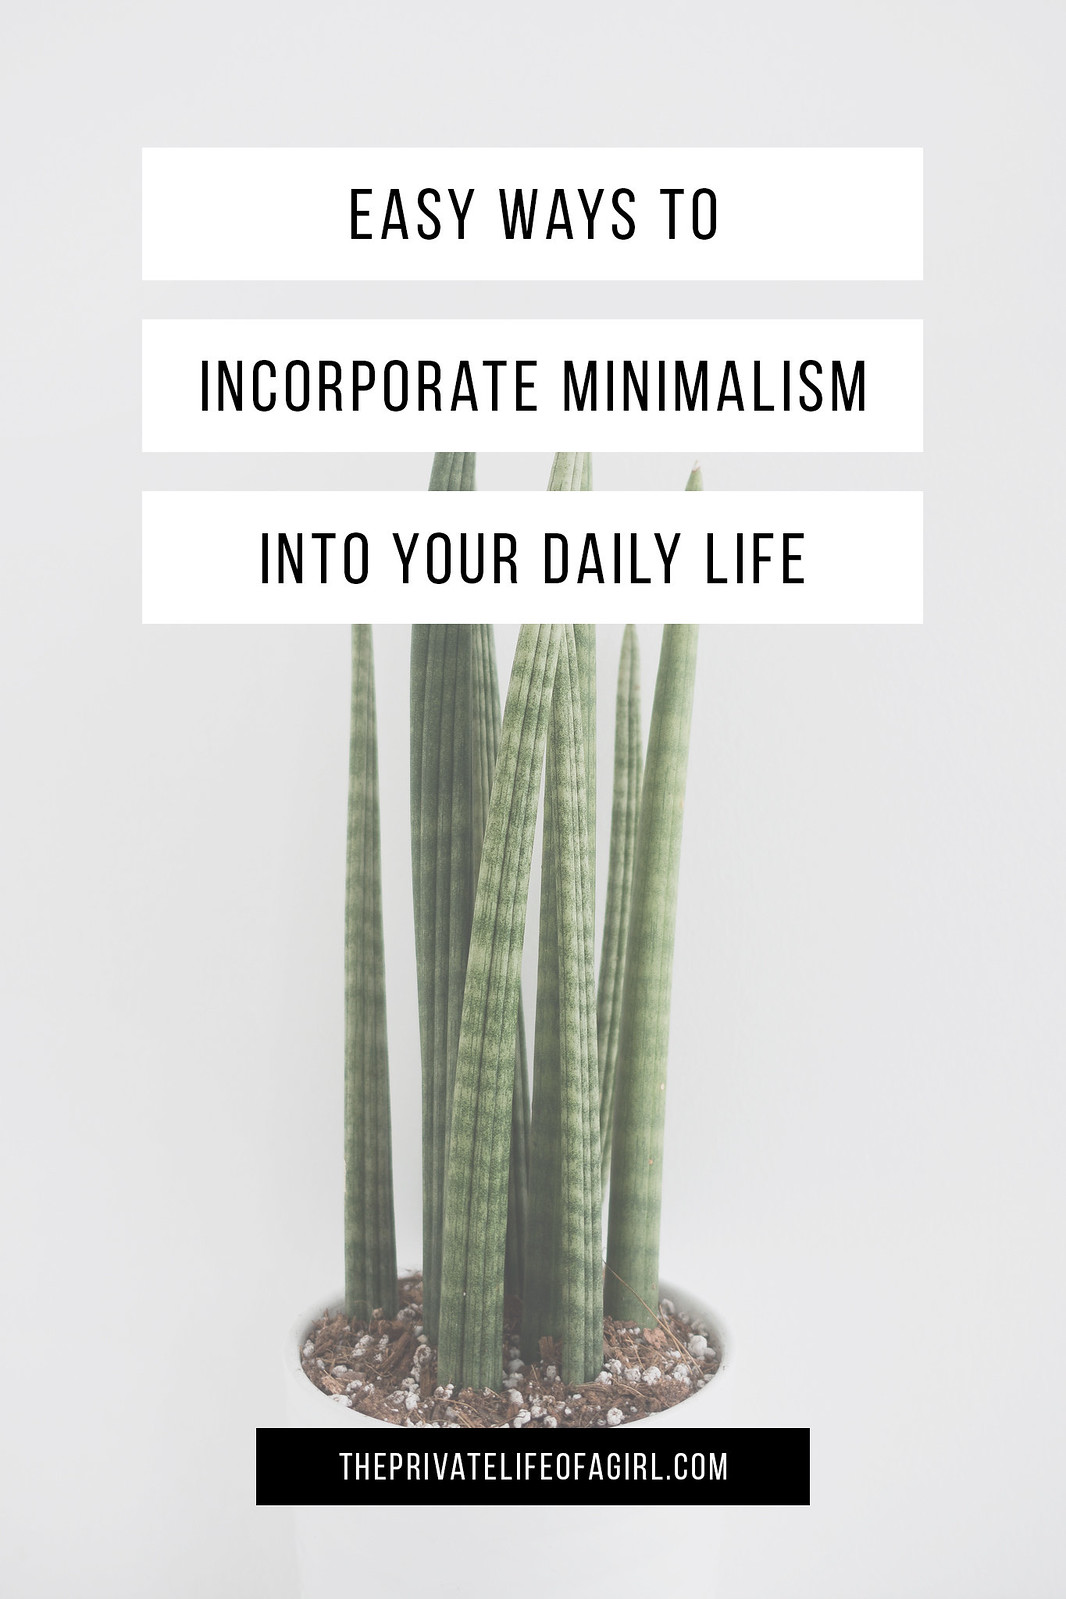 Easy Ways To Incorporate Minimalism Into Daily Life